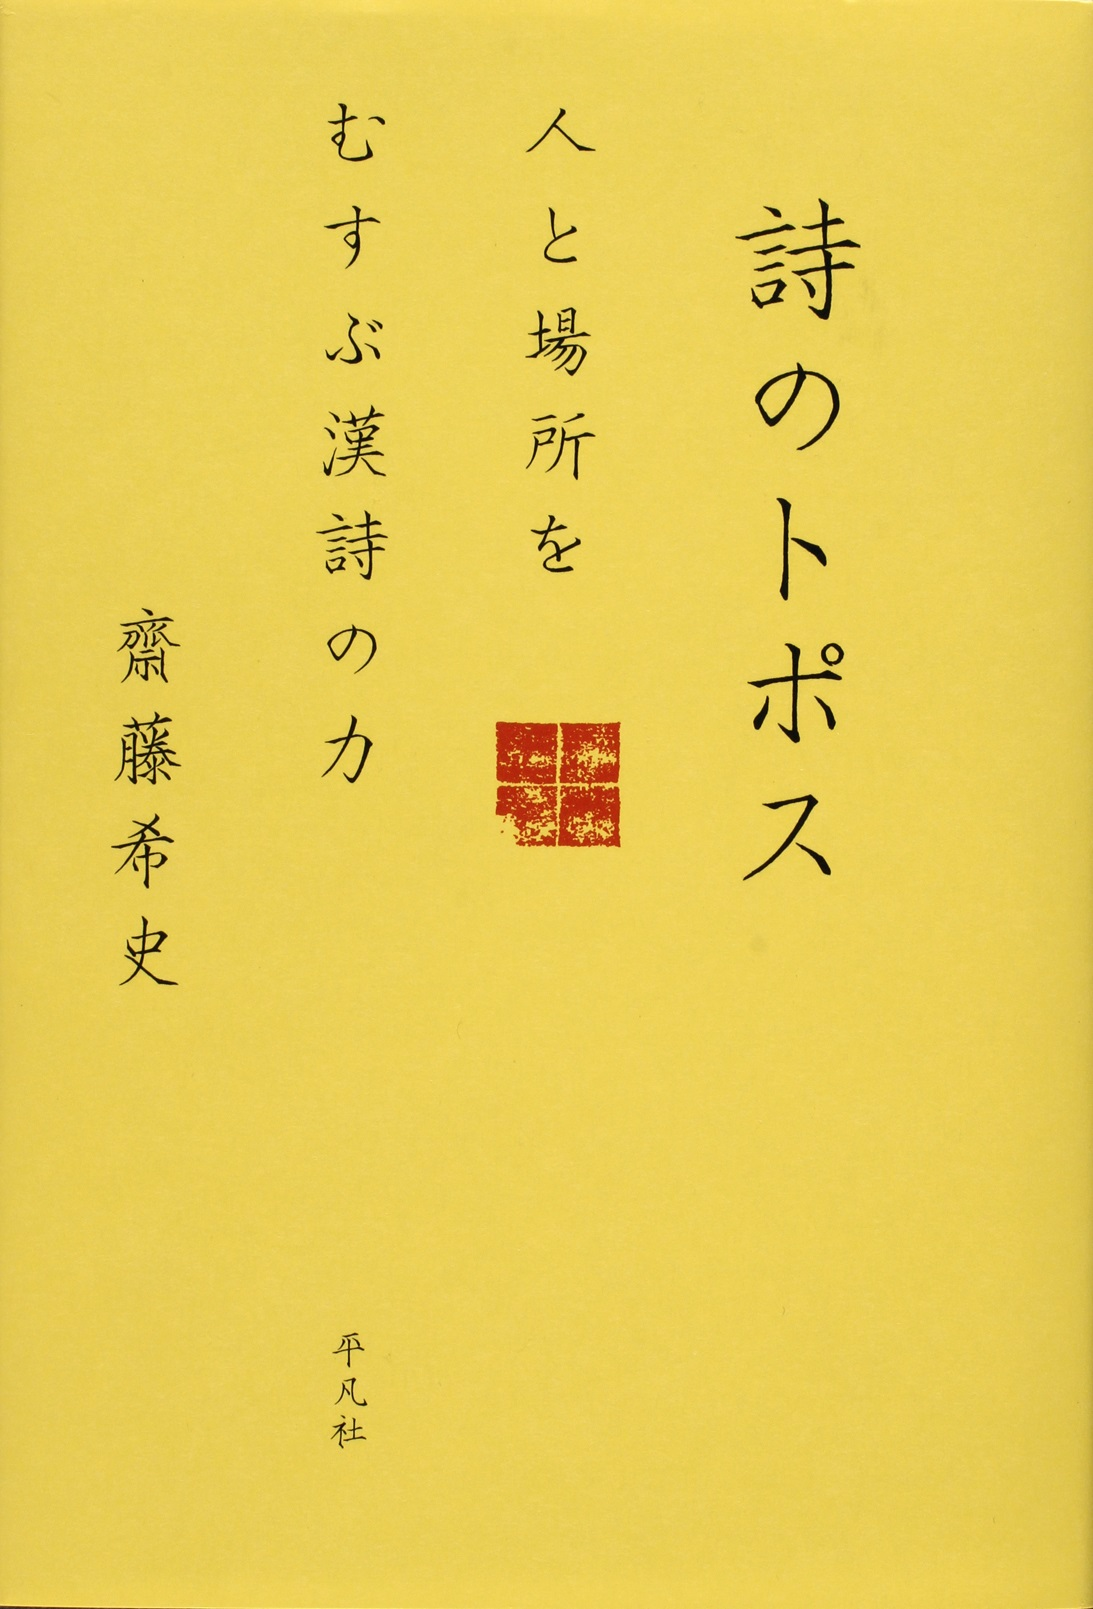 A yellow cover